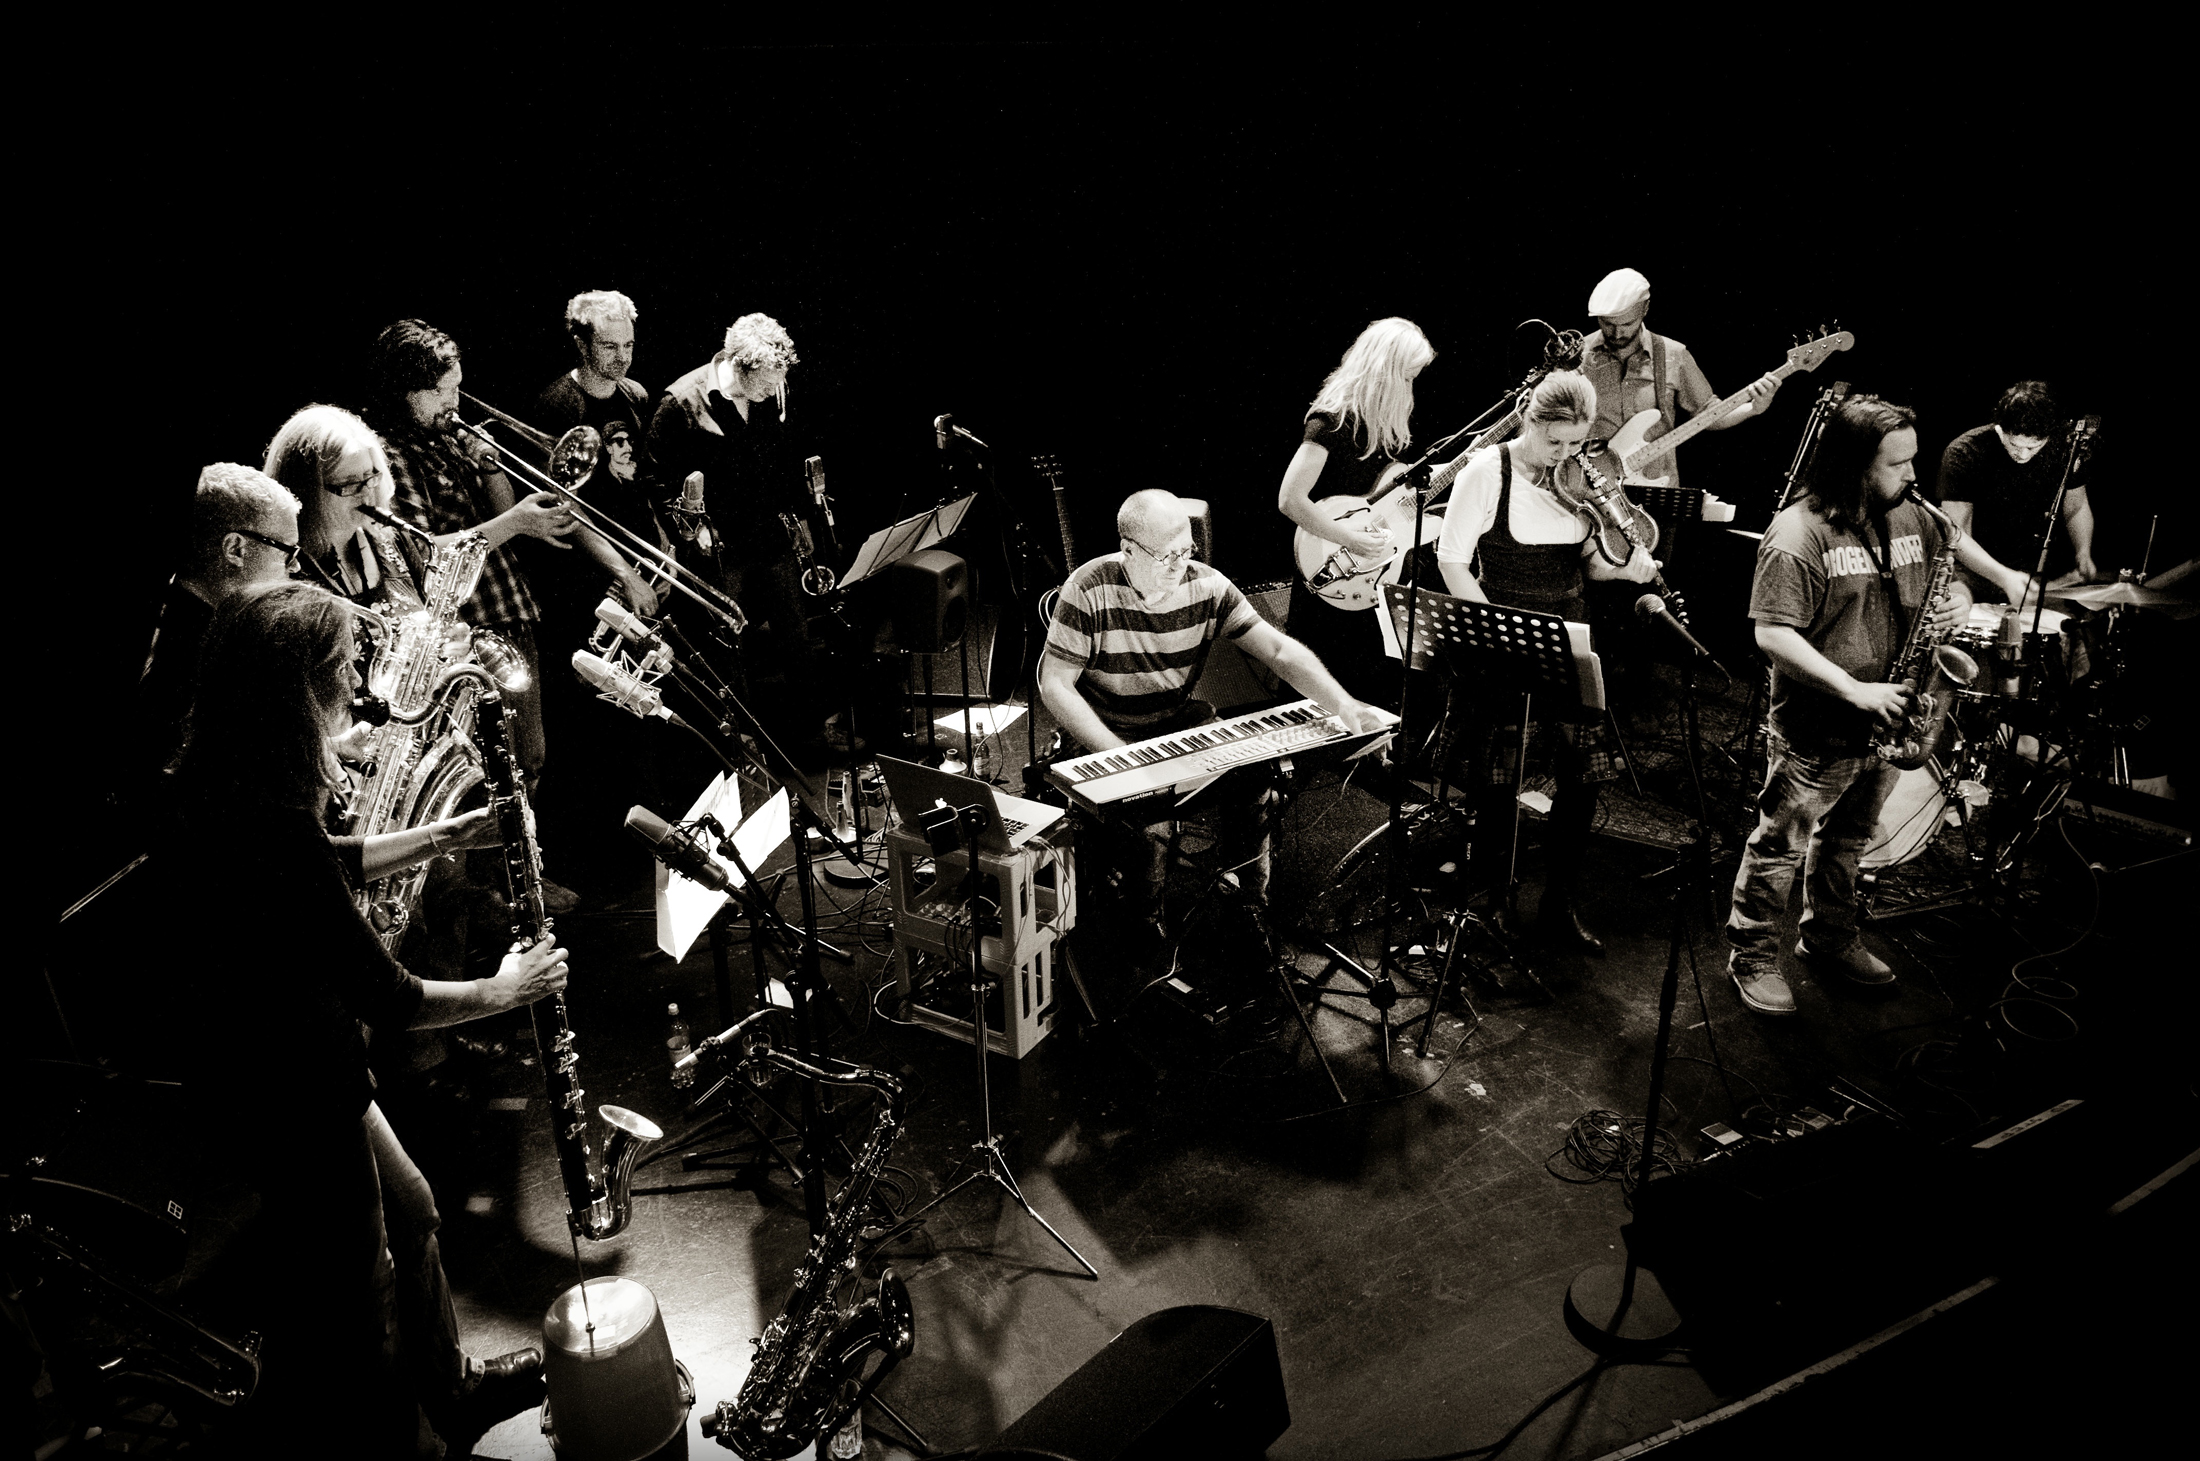 FriEnsemblet, Nasjonal Jazzscene 2009, Photo: Andreas Ulvo